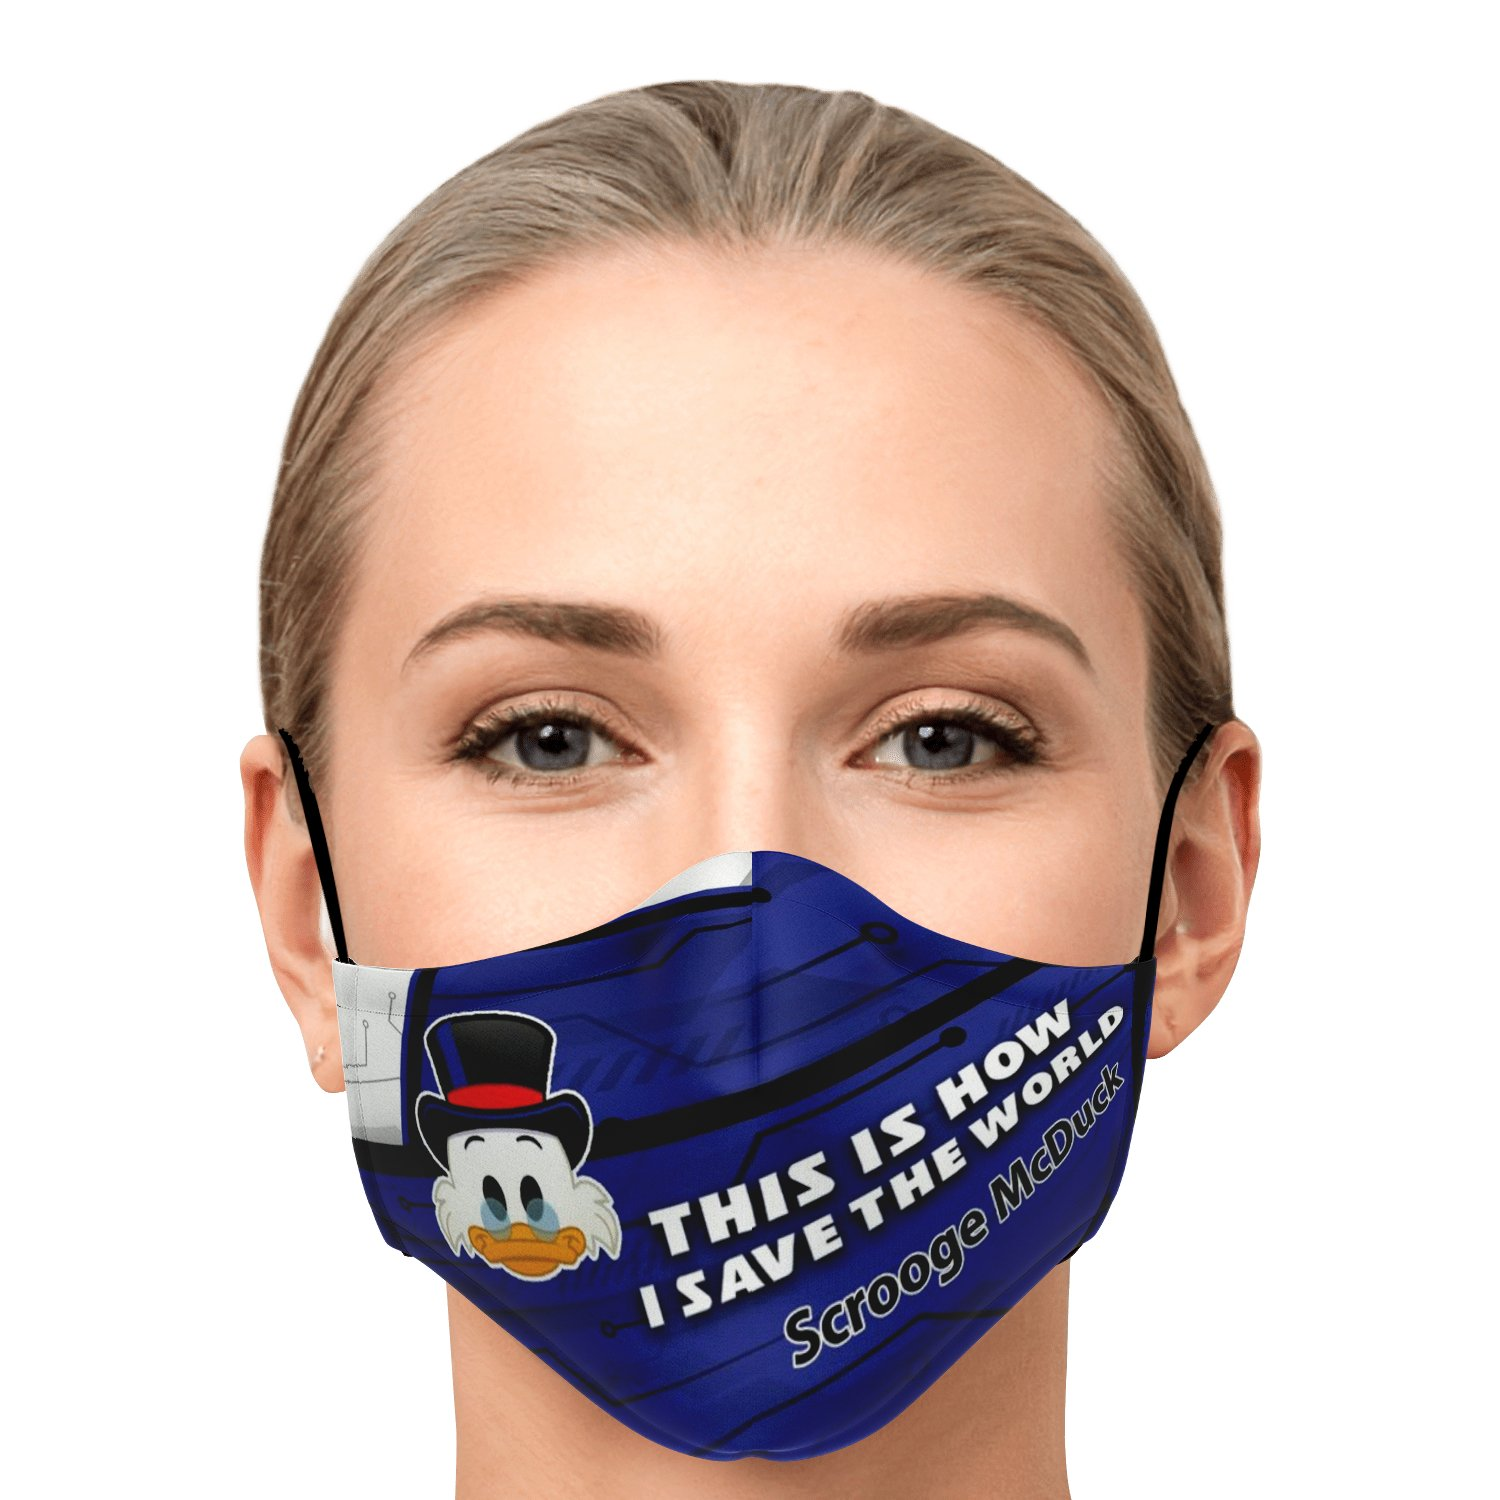 This Is How I Save The World Scrooge McDuck Disney Face Masks 1